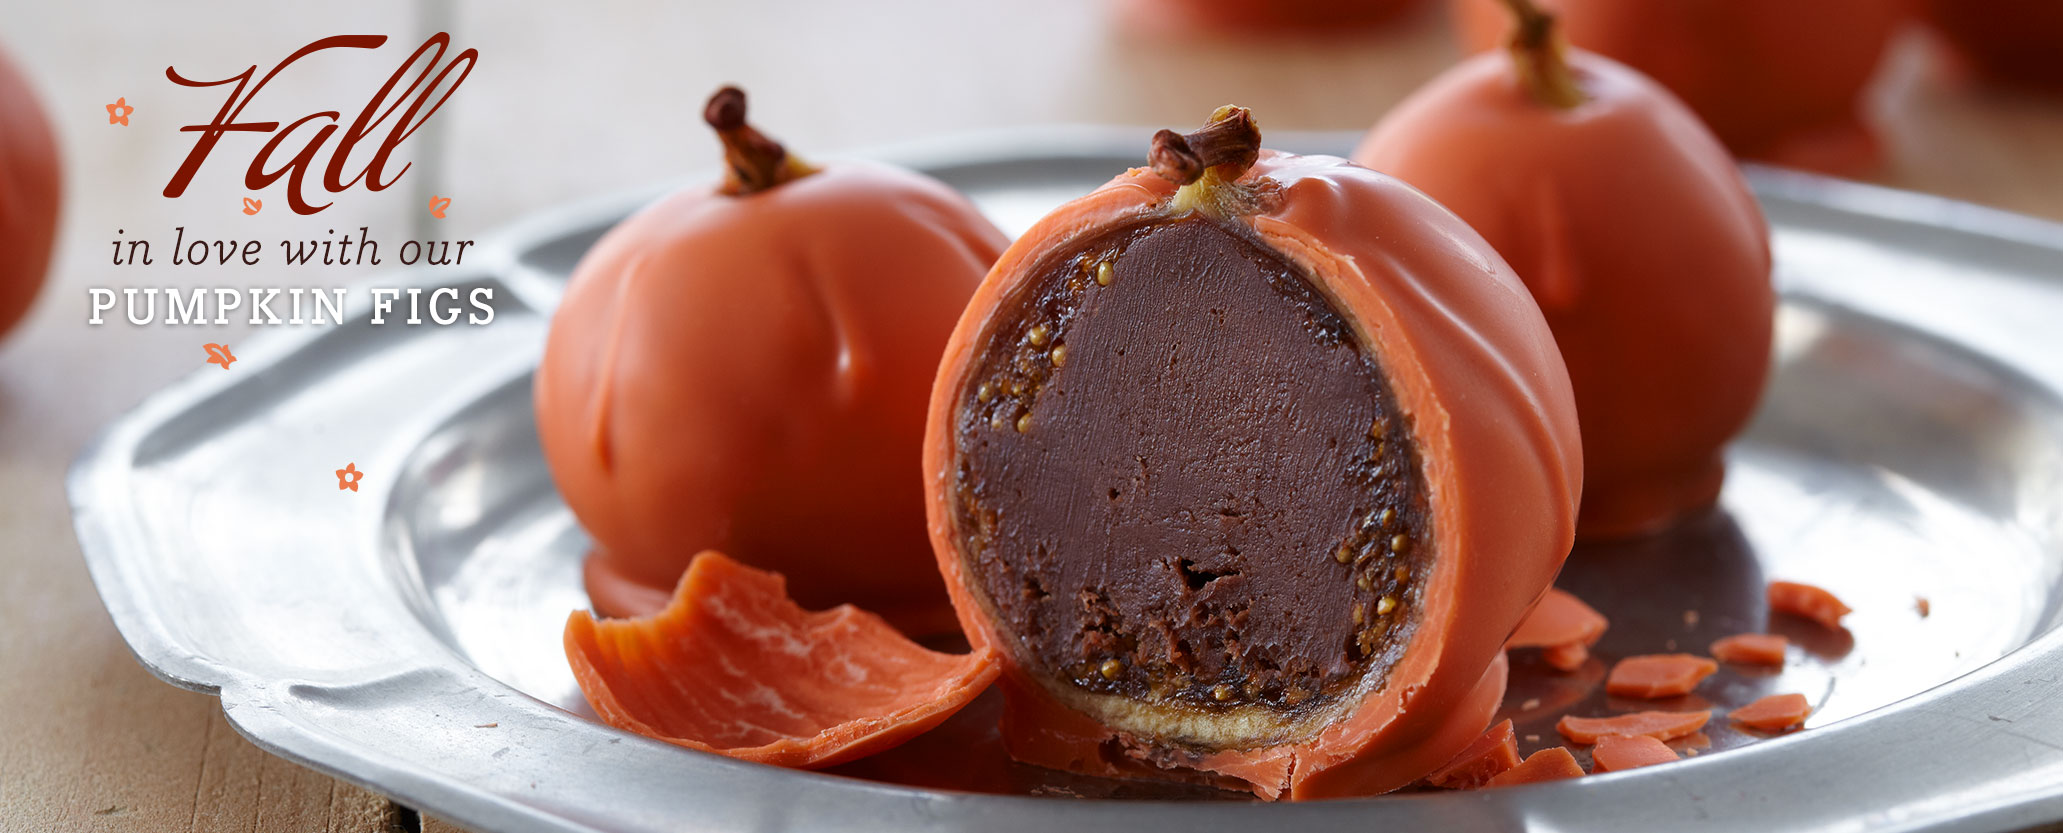 Fall in Love with Our Pumpkin Figs!